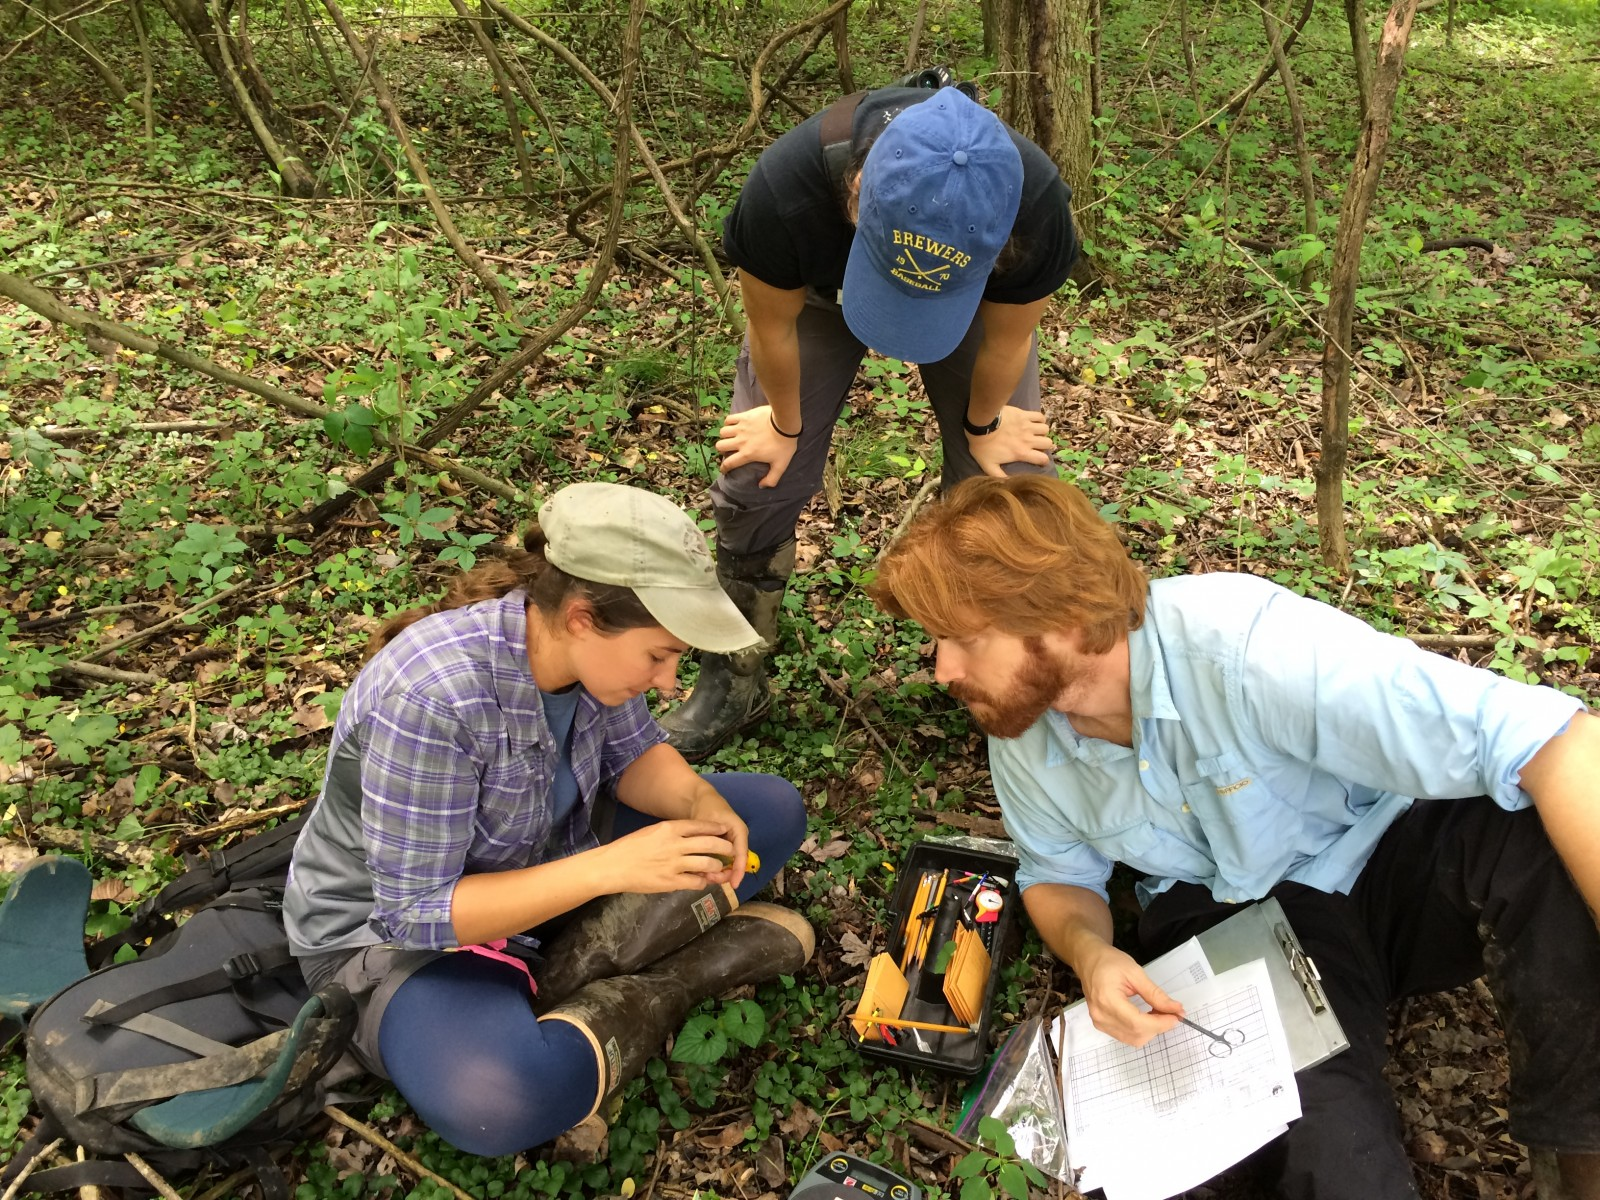 Student researchers (l to r) Liz Ames, Alicia Brunner and Jay Wright with a Prothonotary Warbler tagged for the study. (Photo: Christopher Tonra)